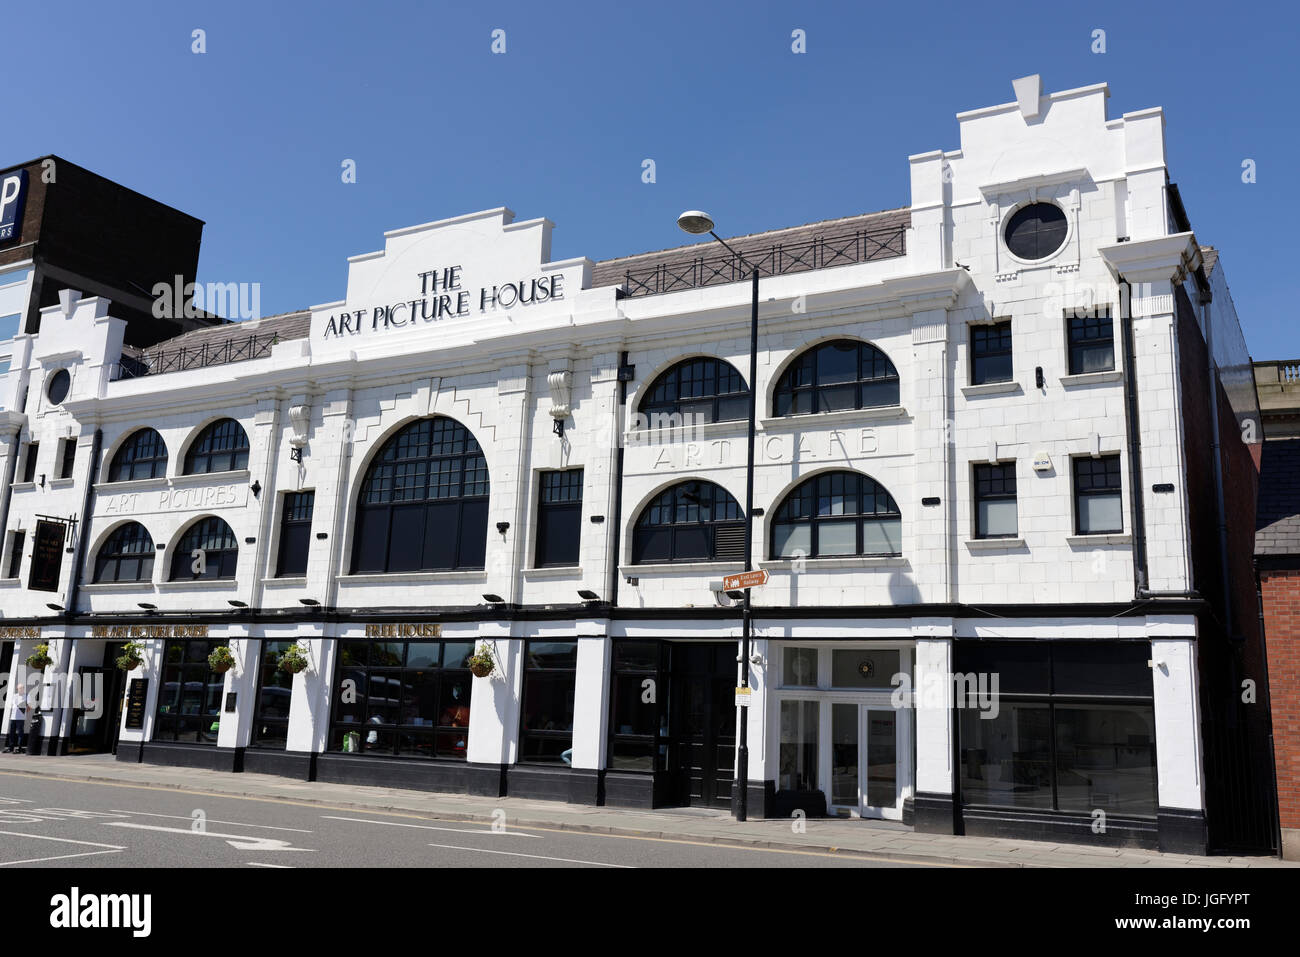 The art picture house bury with nine arched windows in bury lancashire - Stock Image